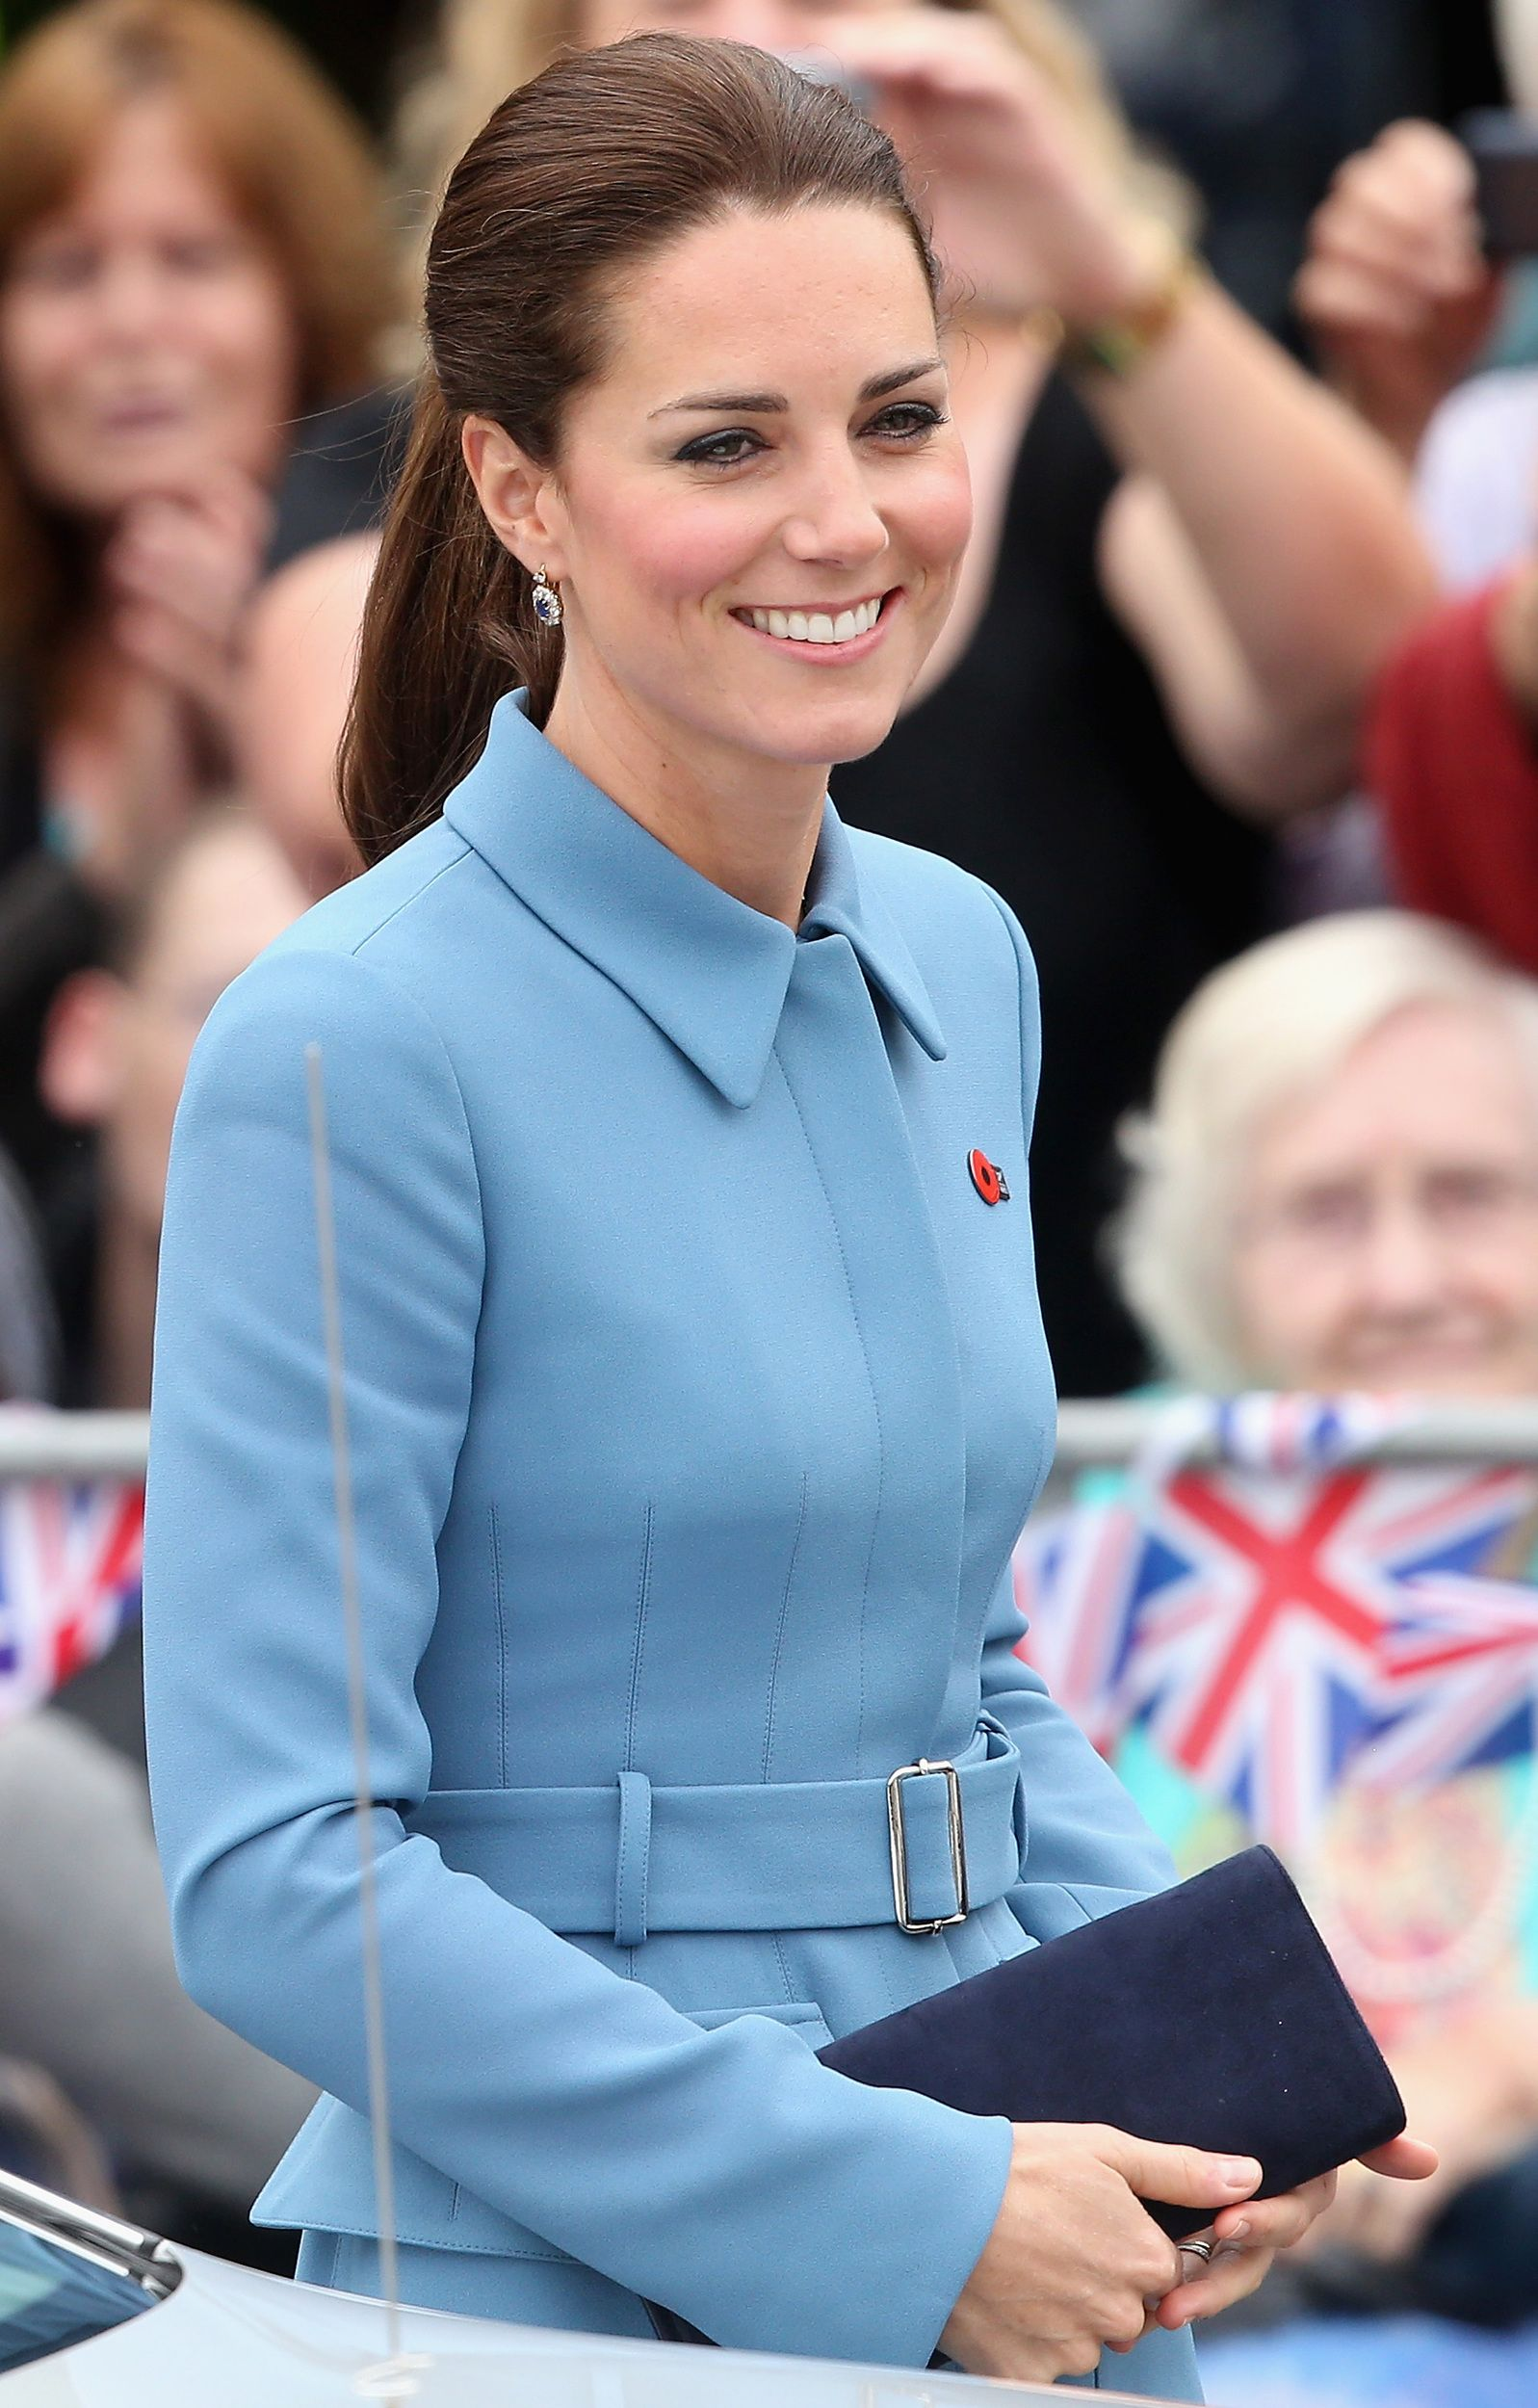 Kate in Alexander McQueen | All the stunning looks of Kate Middleton's tour down under http://aol.it/1rtBxhy